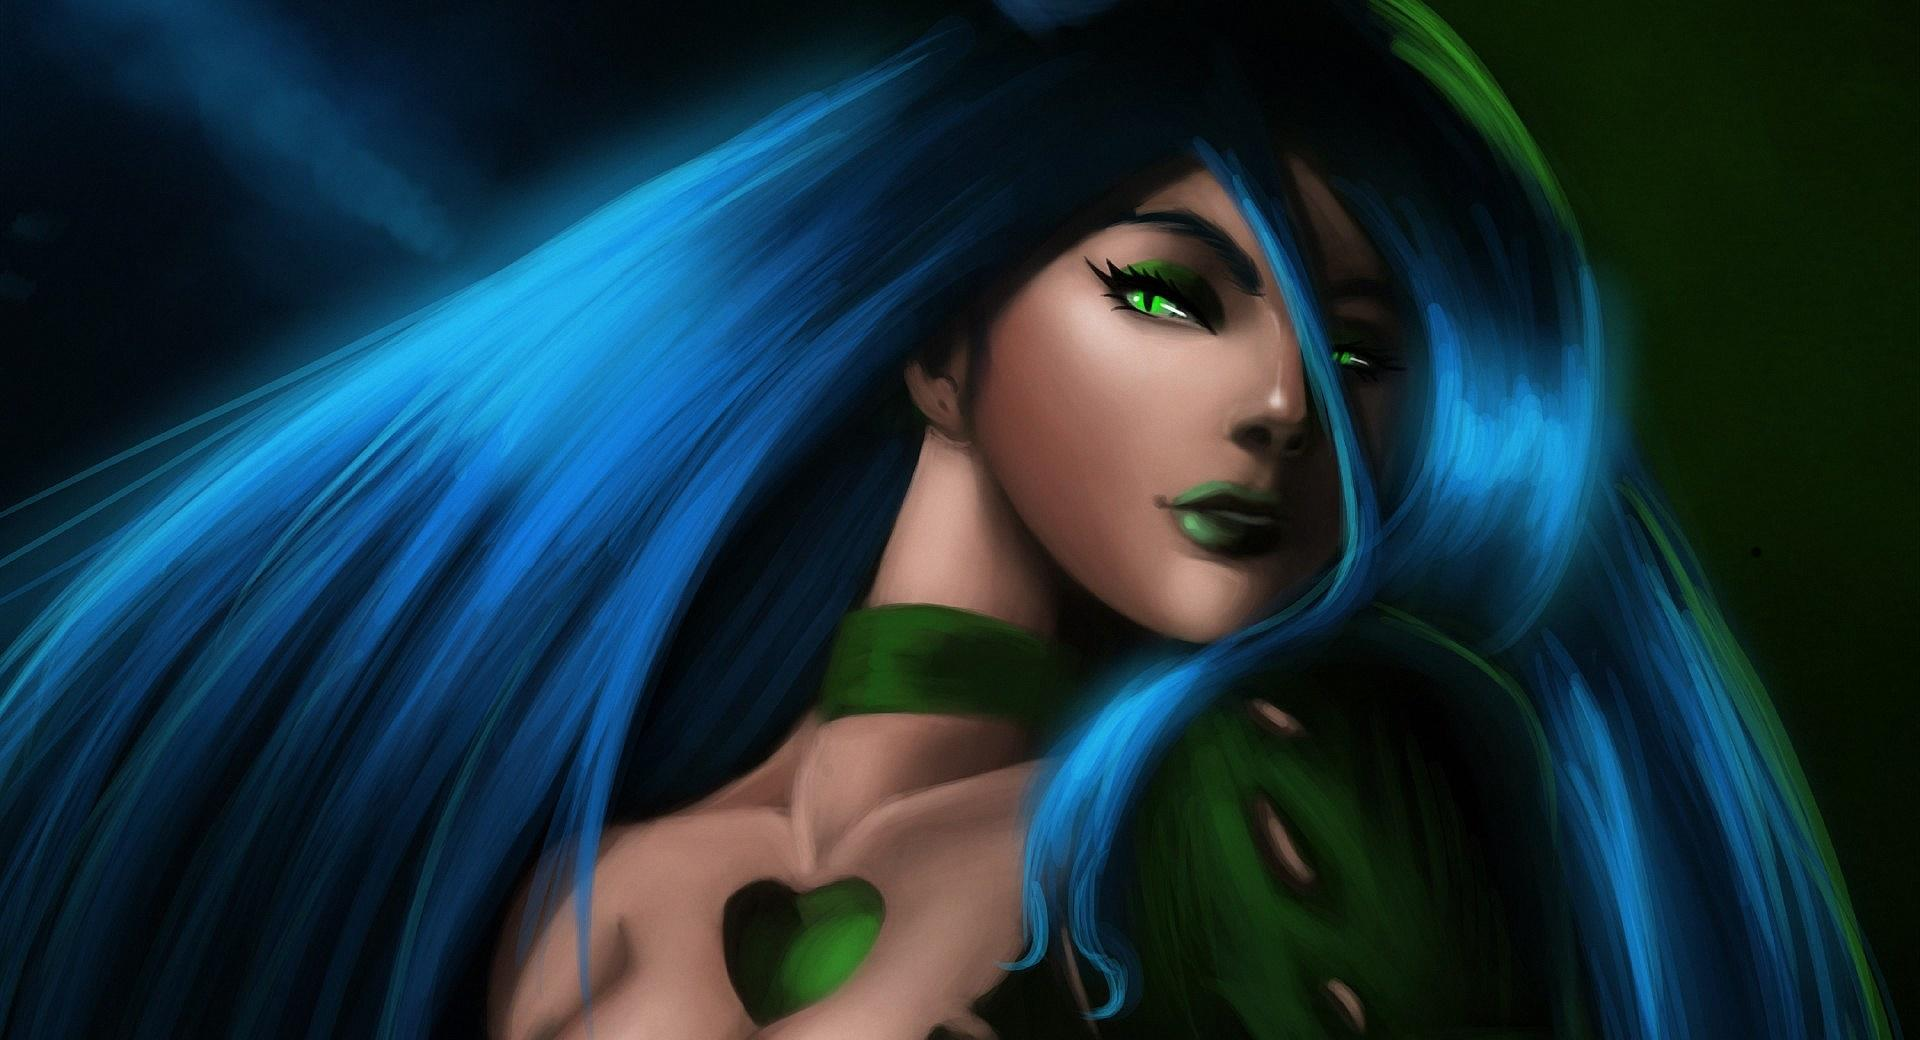 Girl With Green Eyes, Green Lips wallpapers HD quality